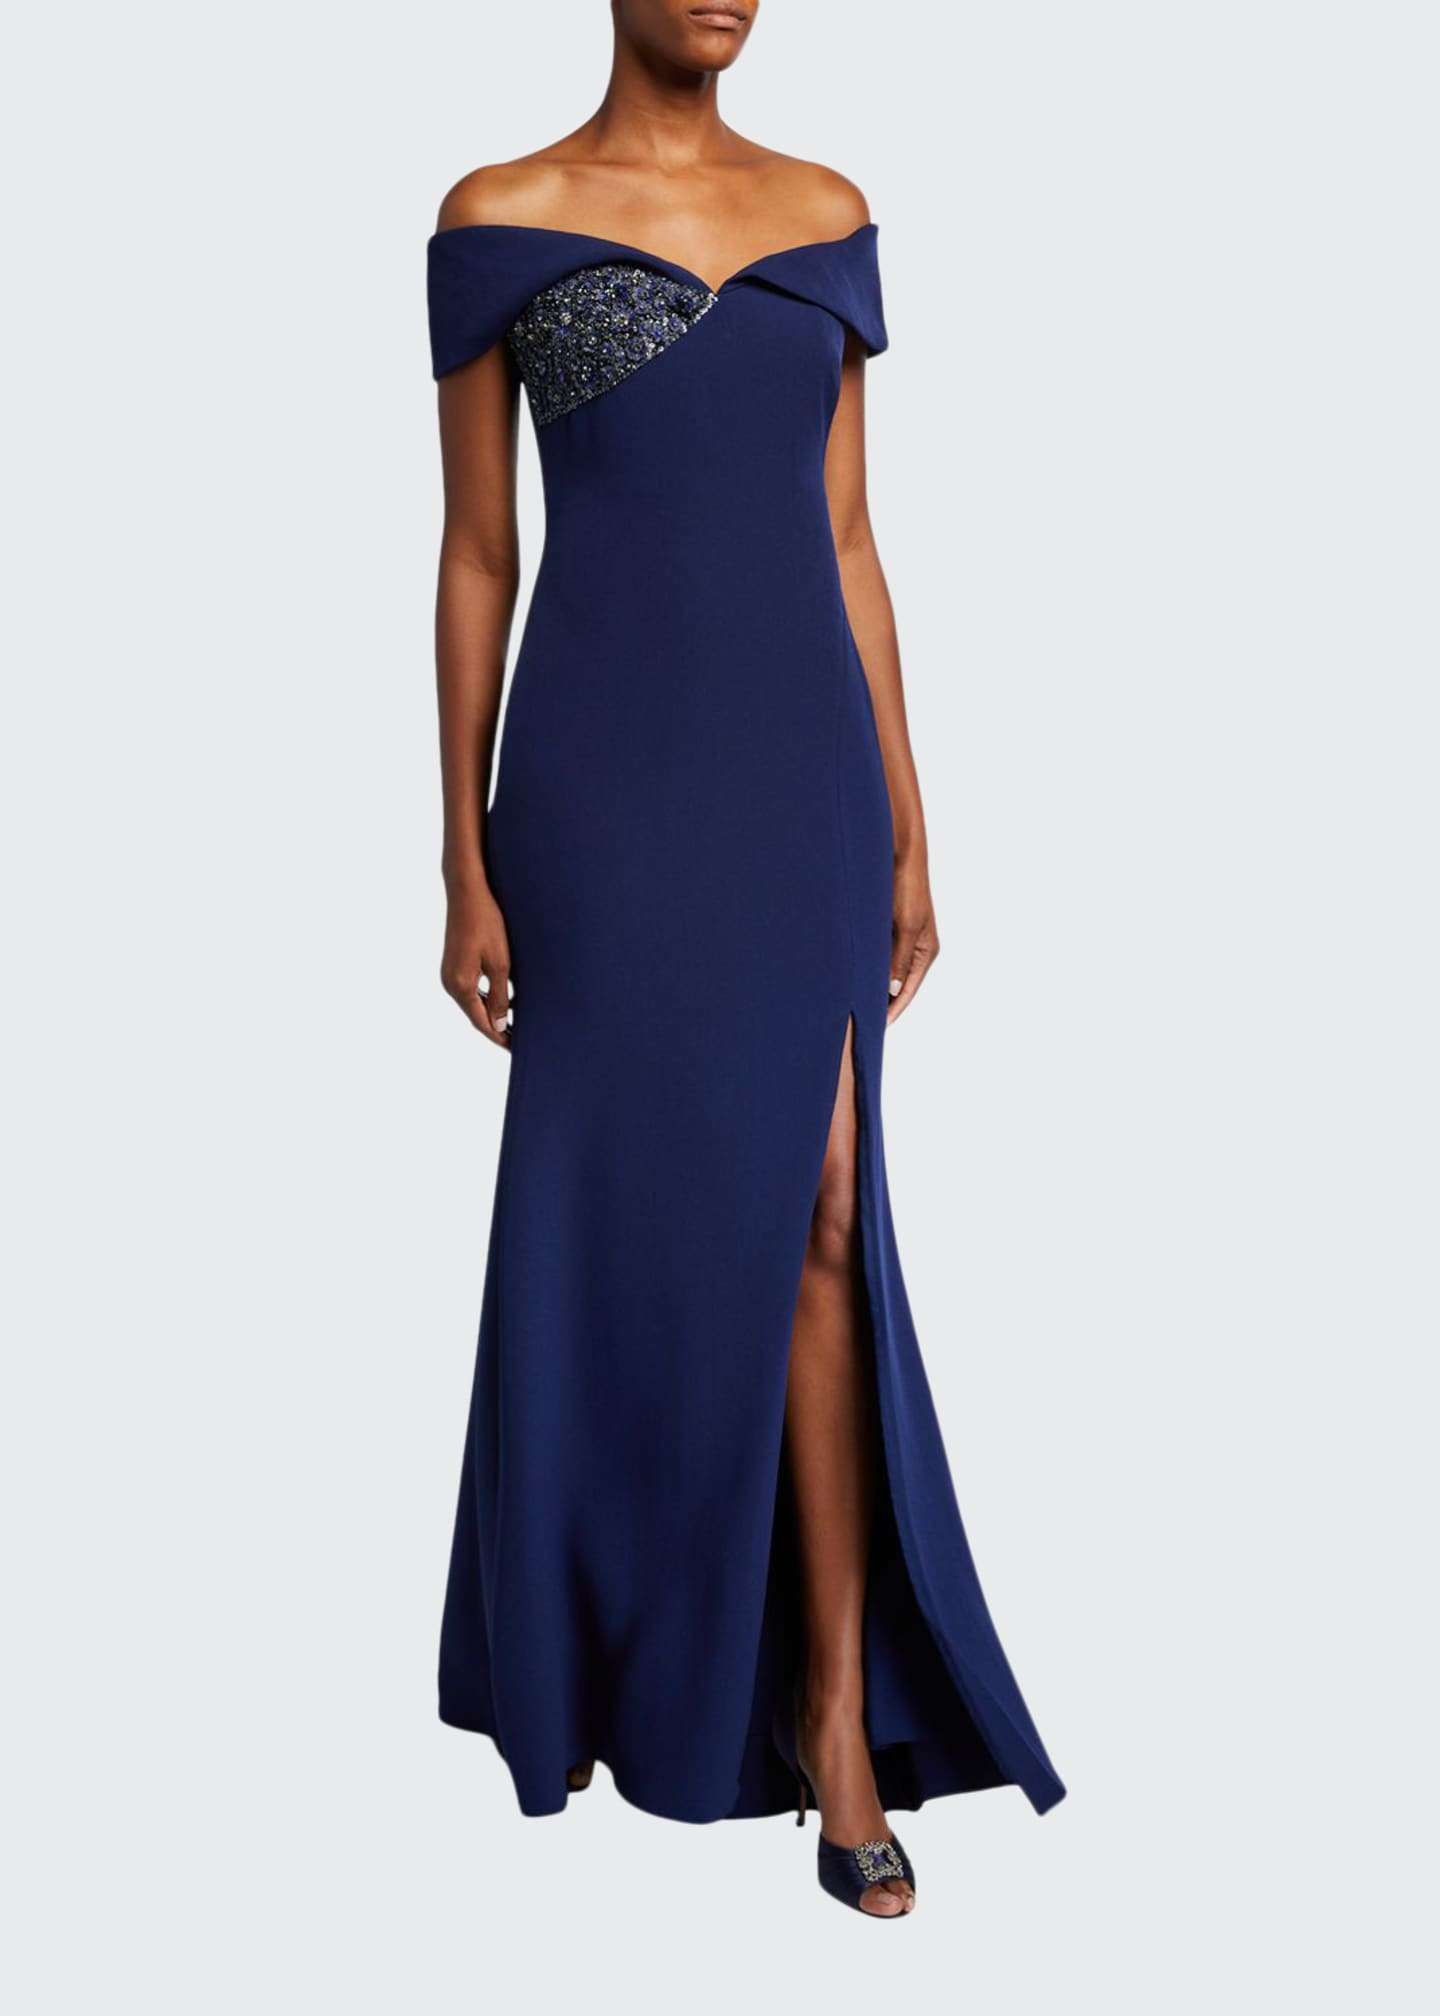 Badgley Mischka Collection Off-the-Shoulder Gown with Beaded